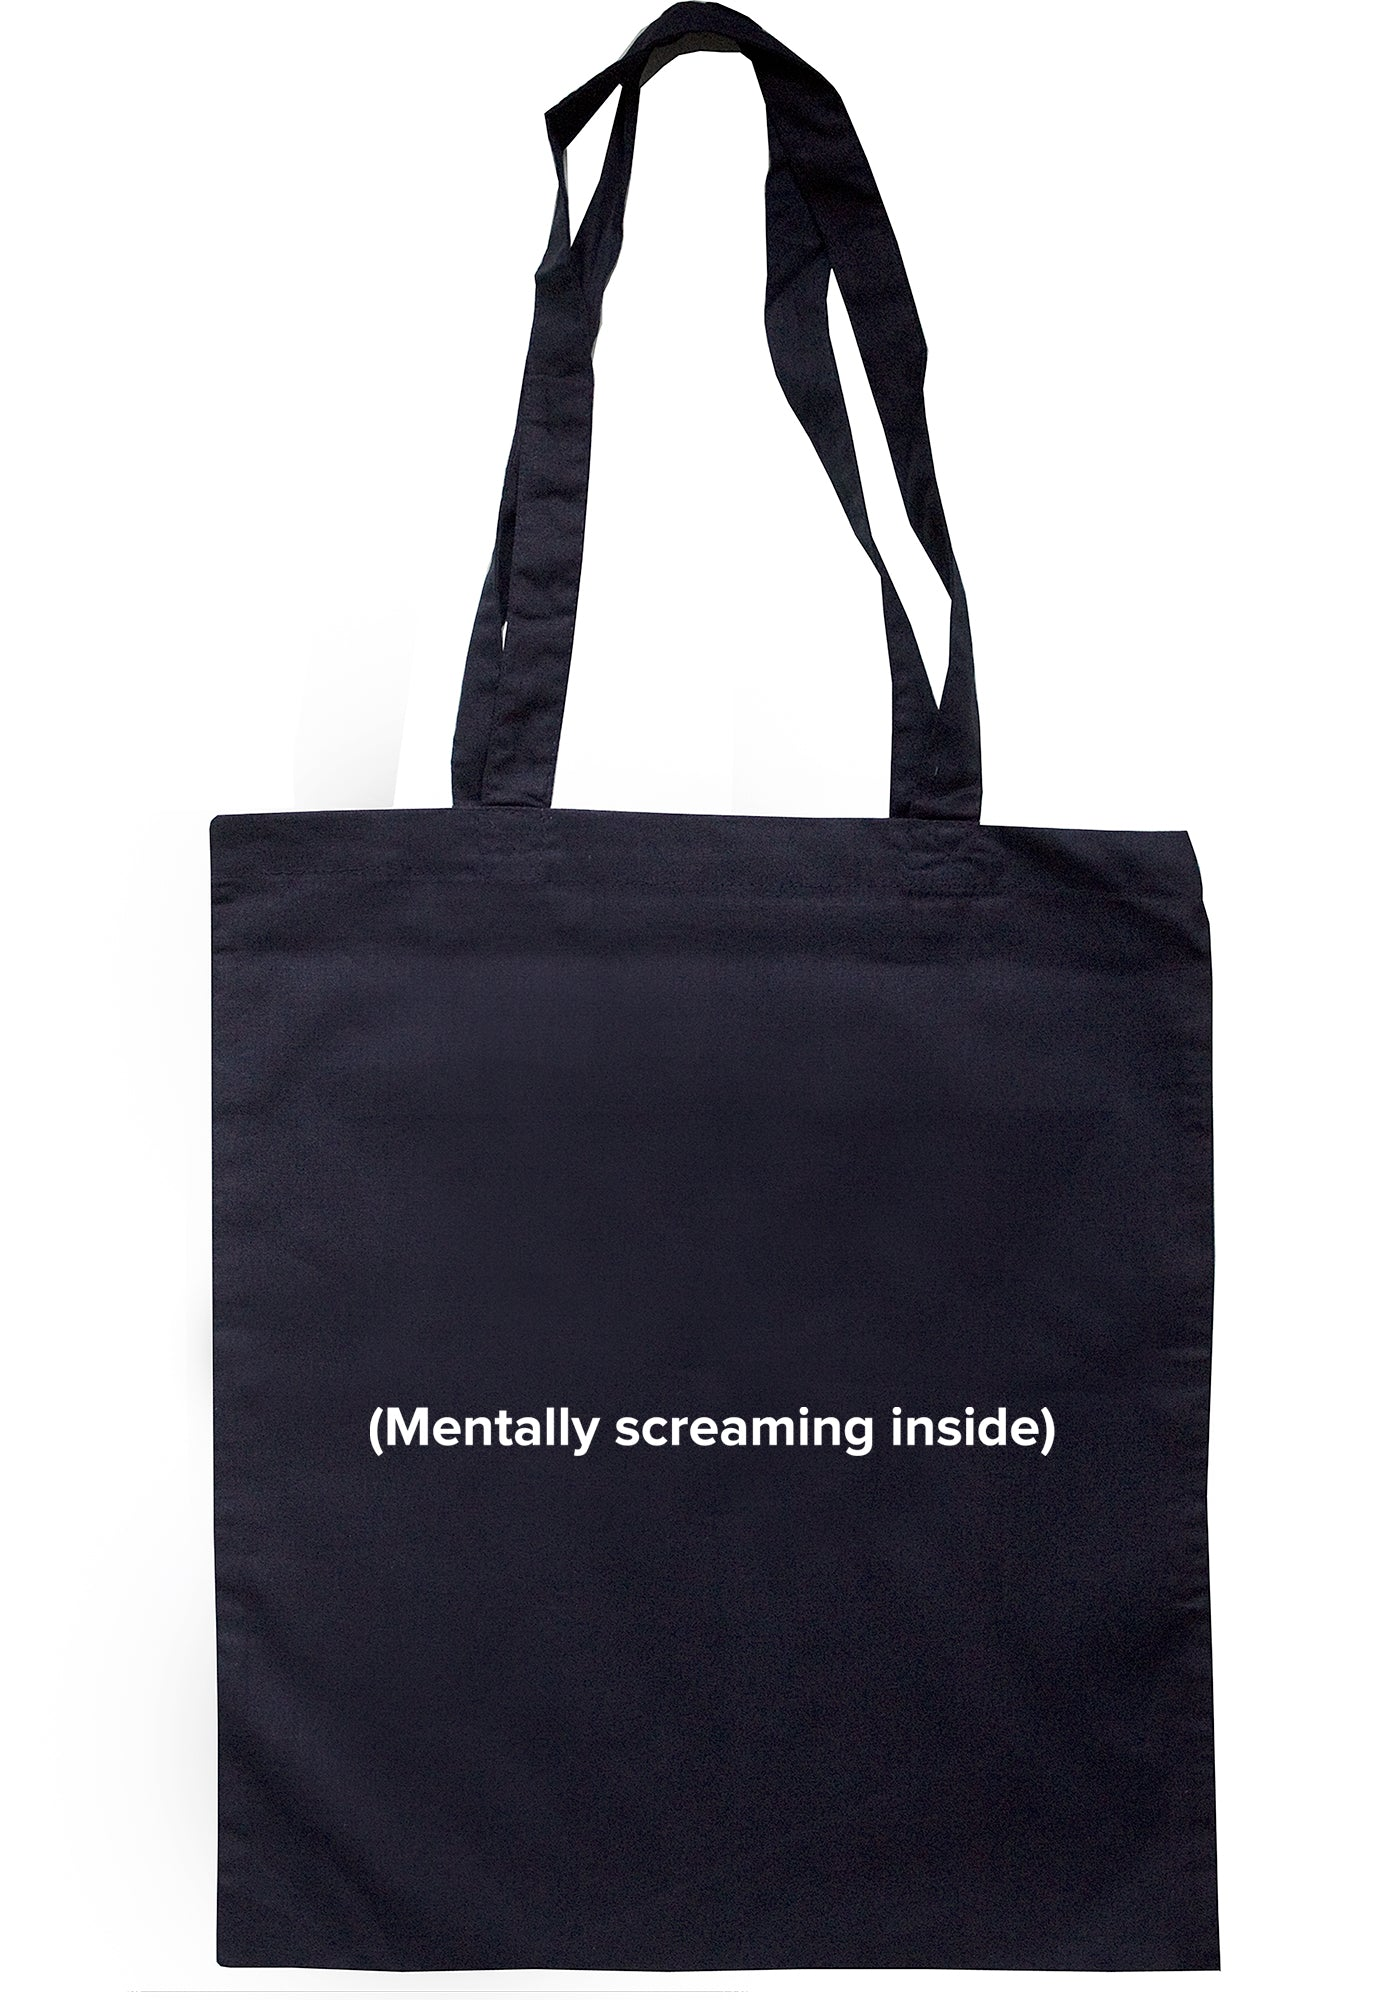 (Mentally Screaming Inside) Tote Bag S1144 - Illustrated Identity Ltd.